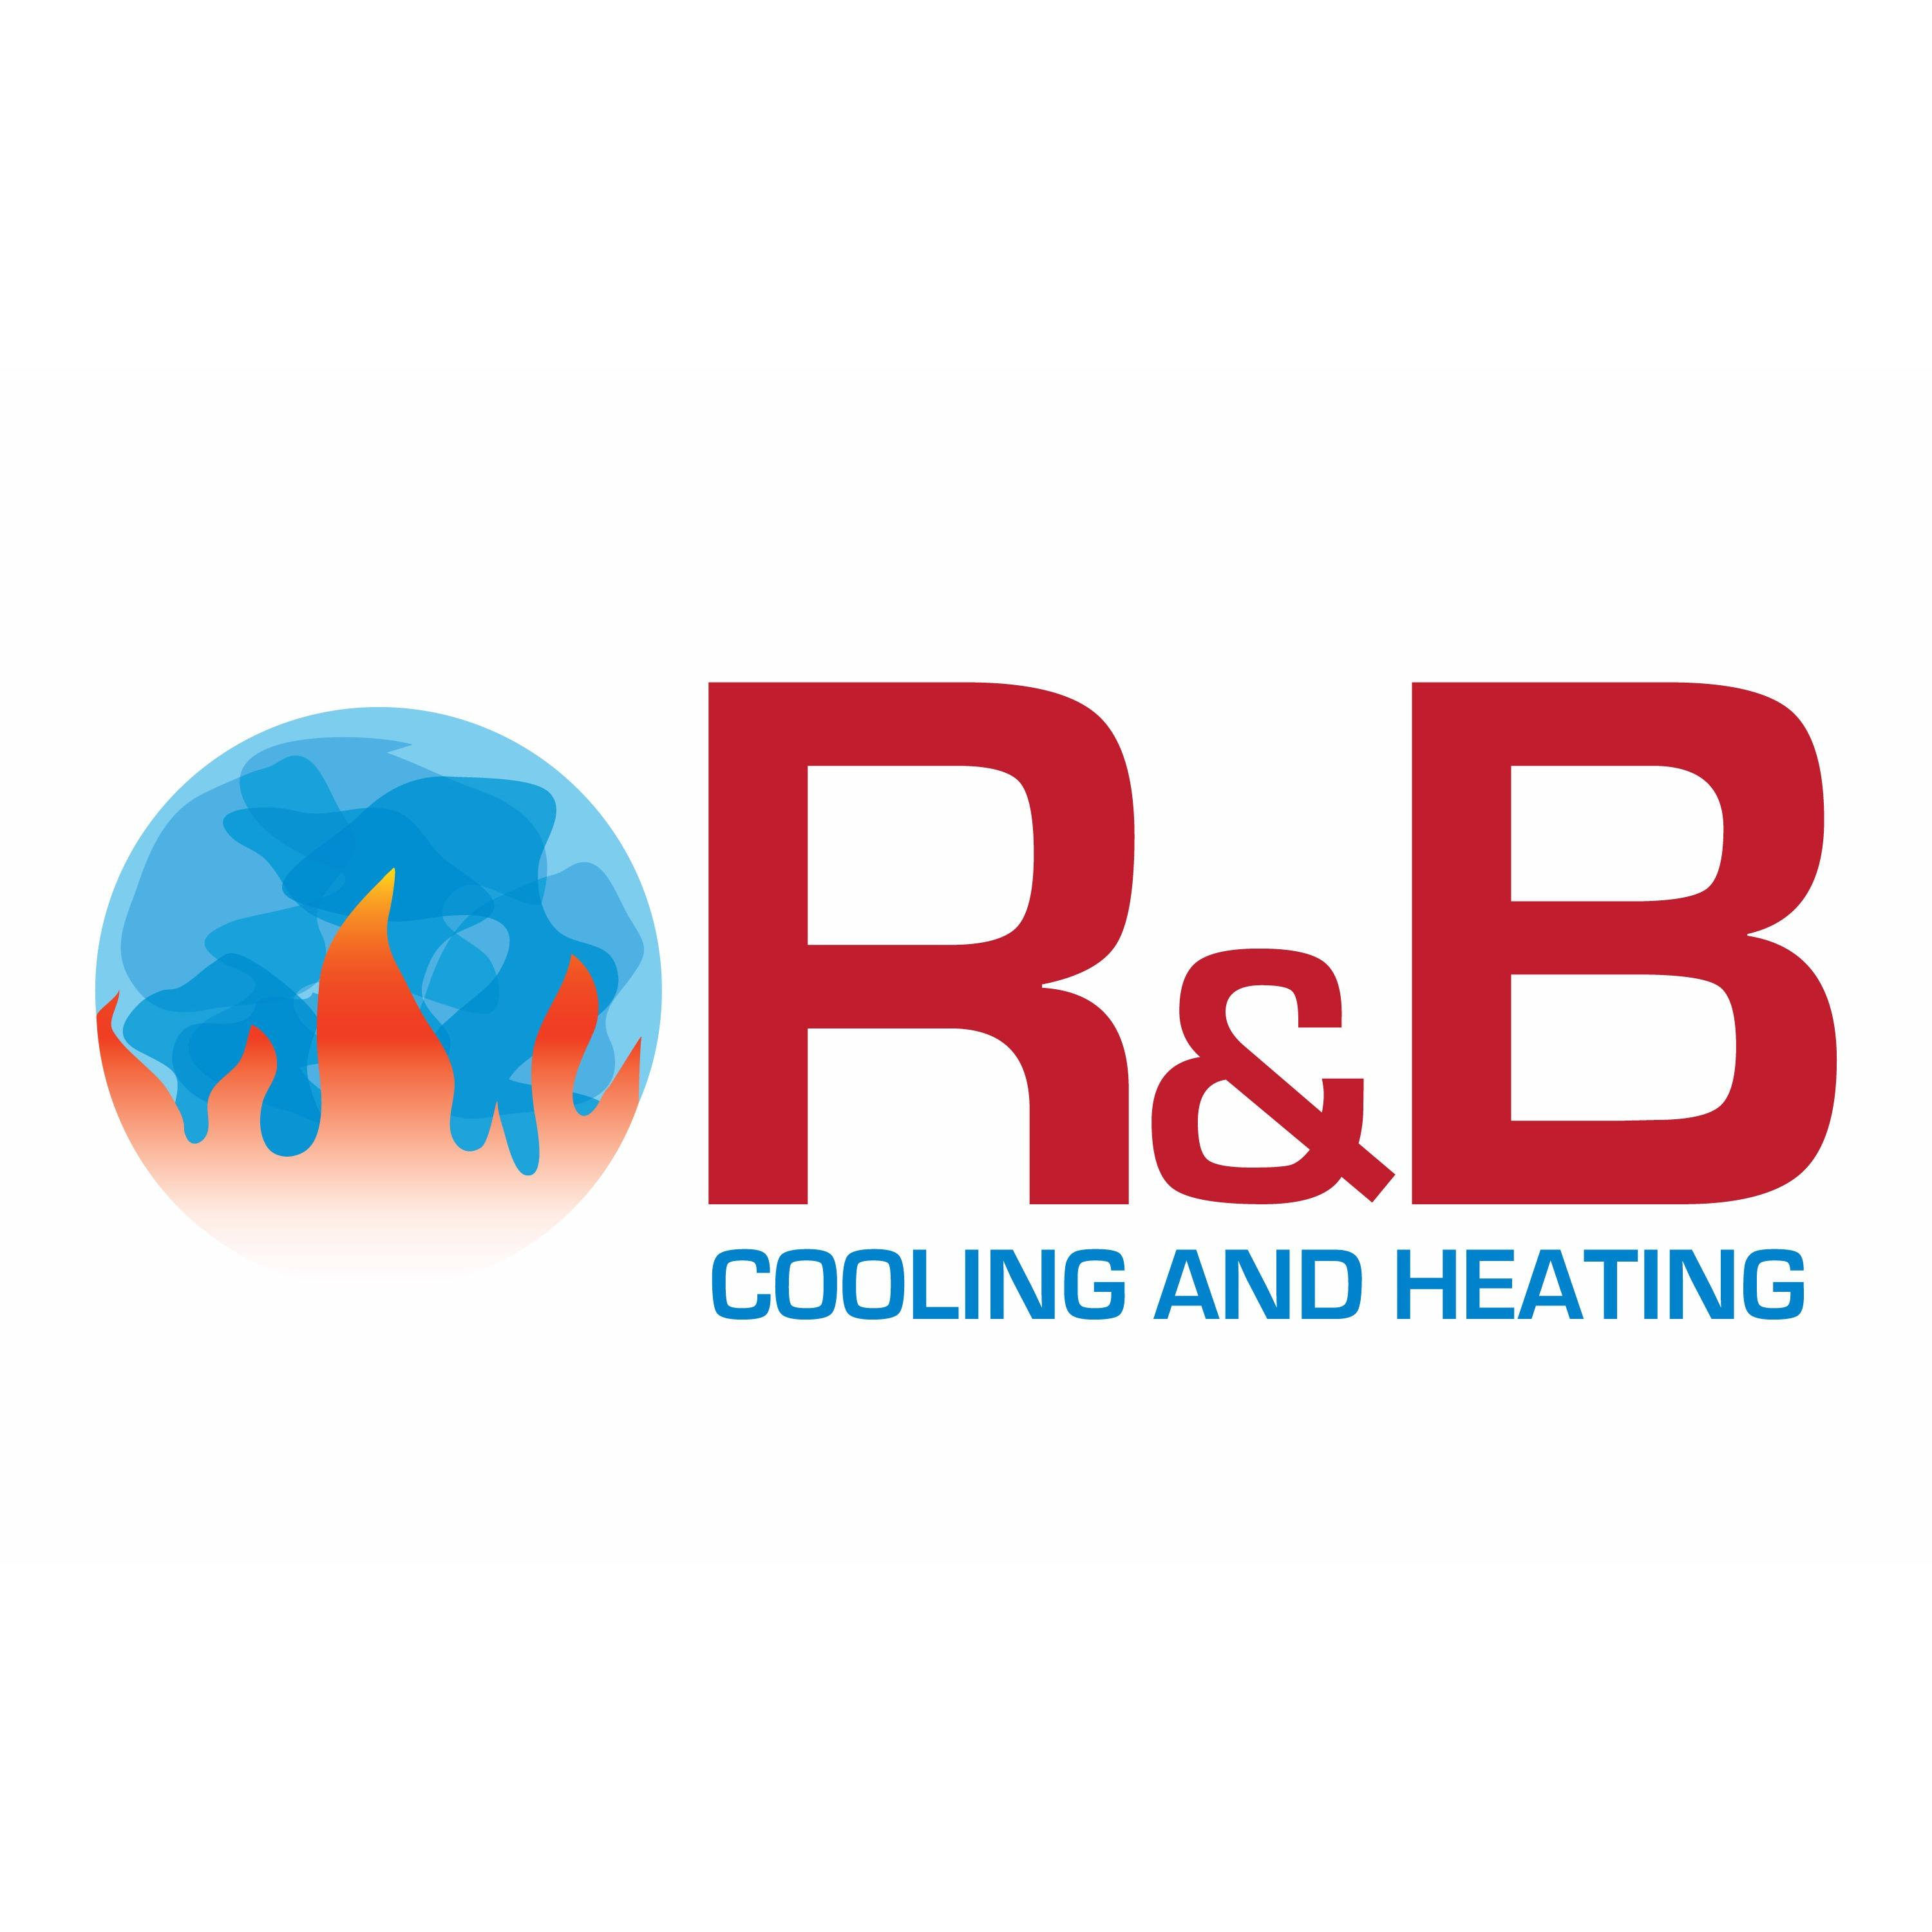 R & B Cooling and Heating